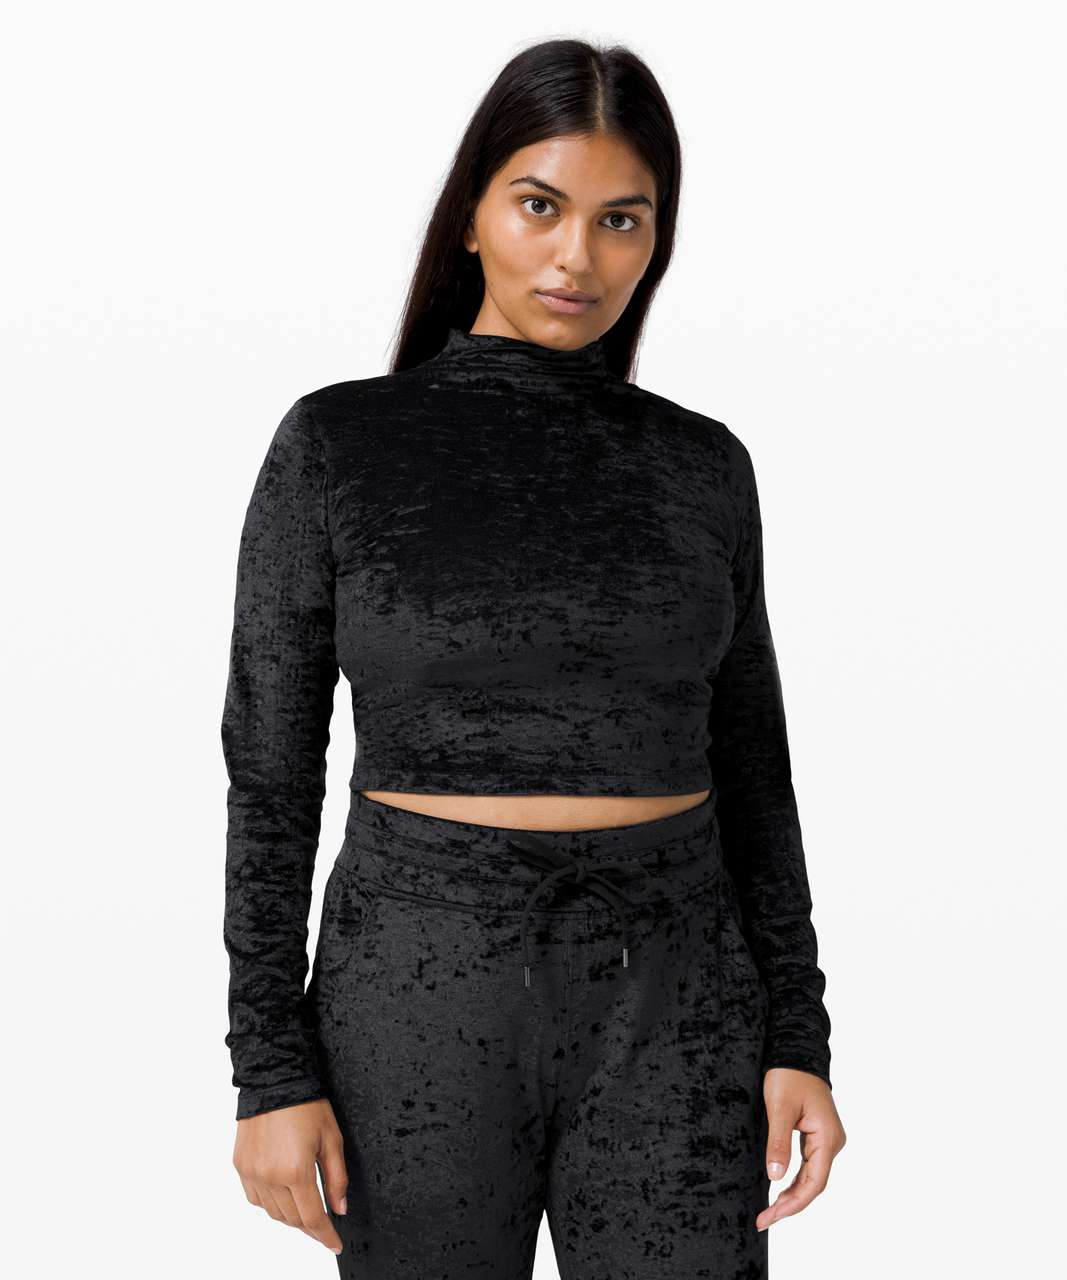 Lululemon All Aligned Mock Neck Long Sleeve *Crushed Velvet - Black